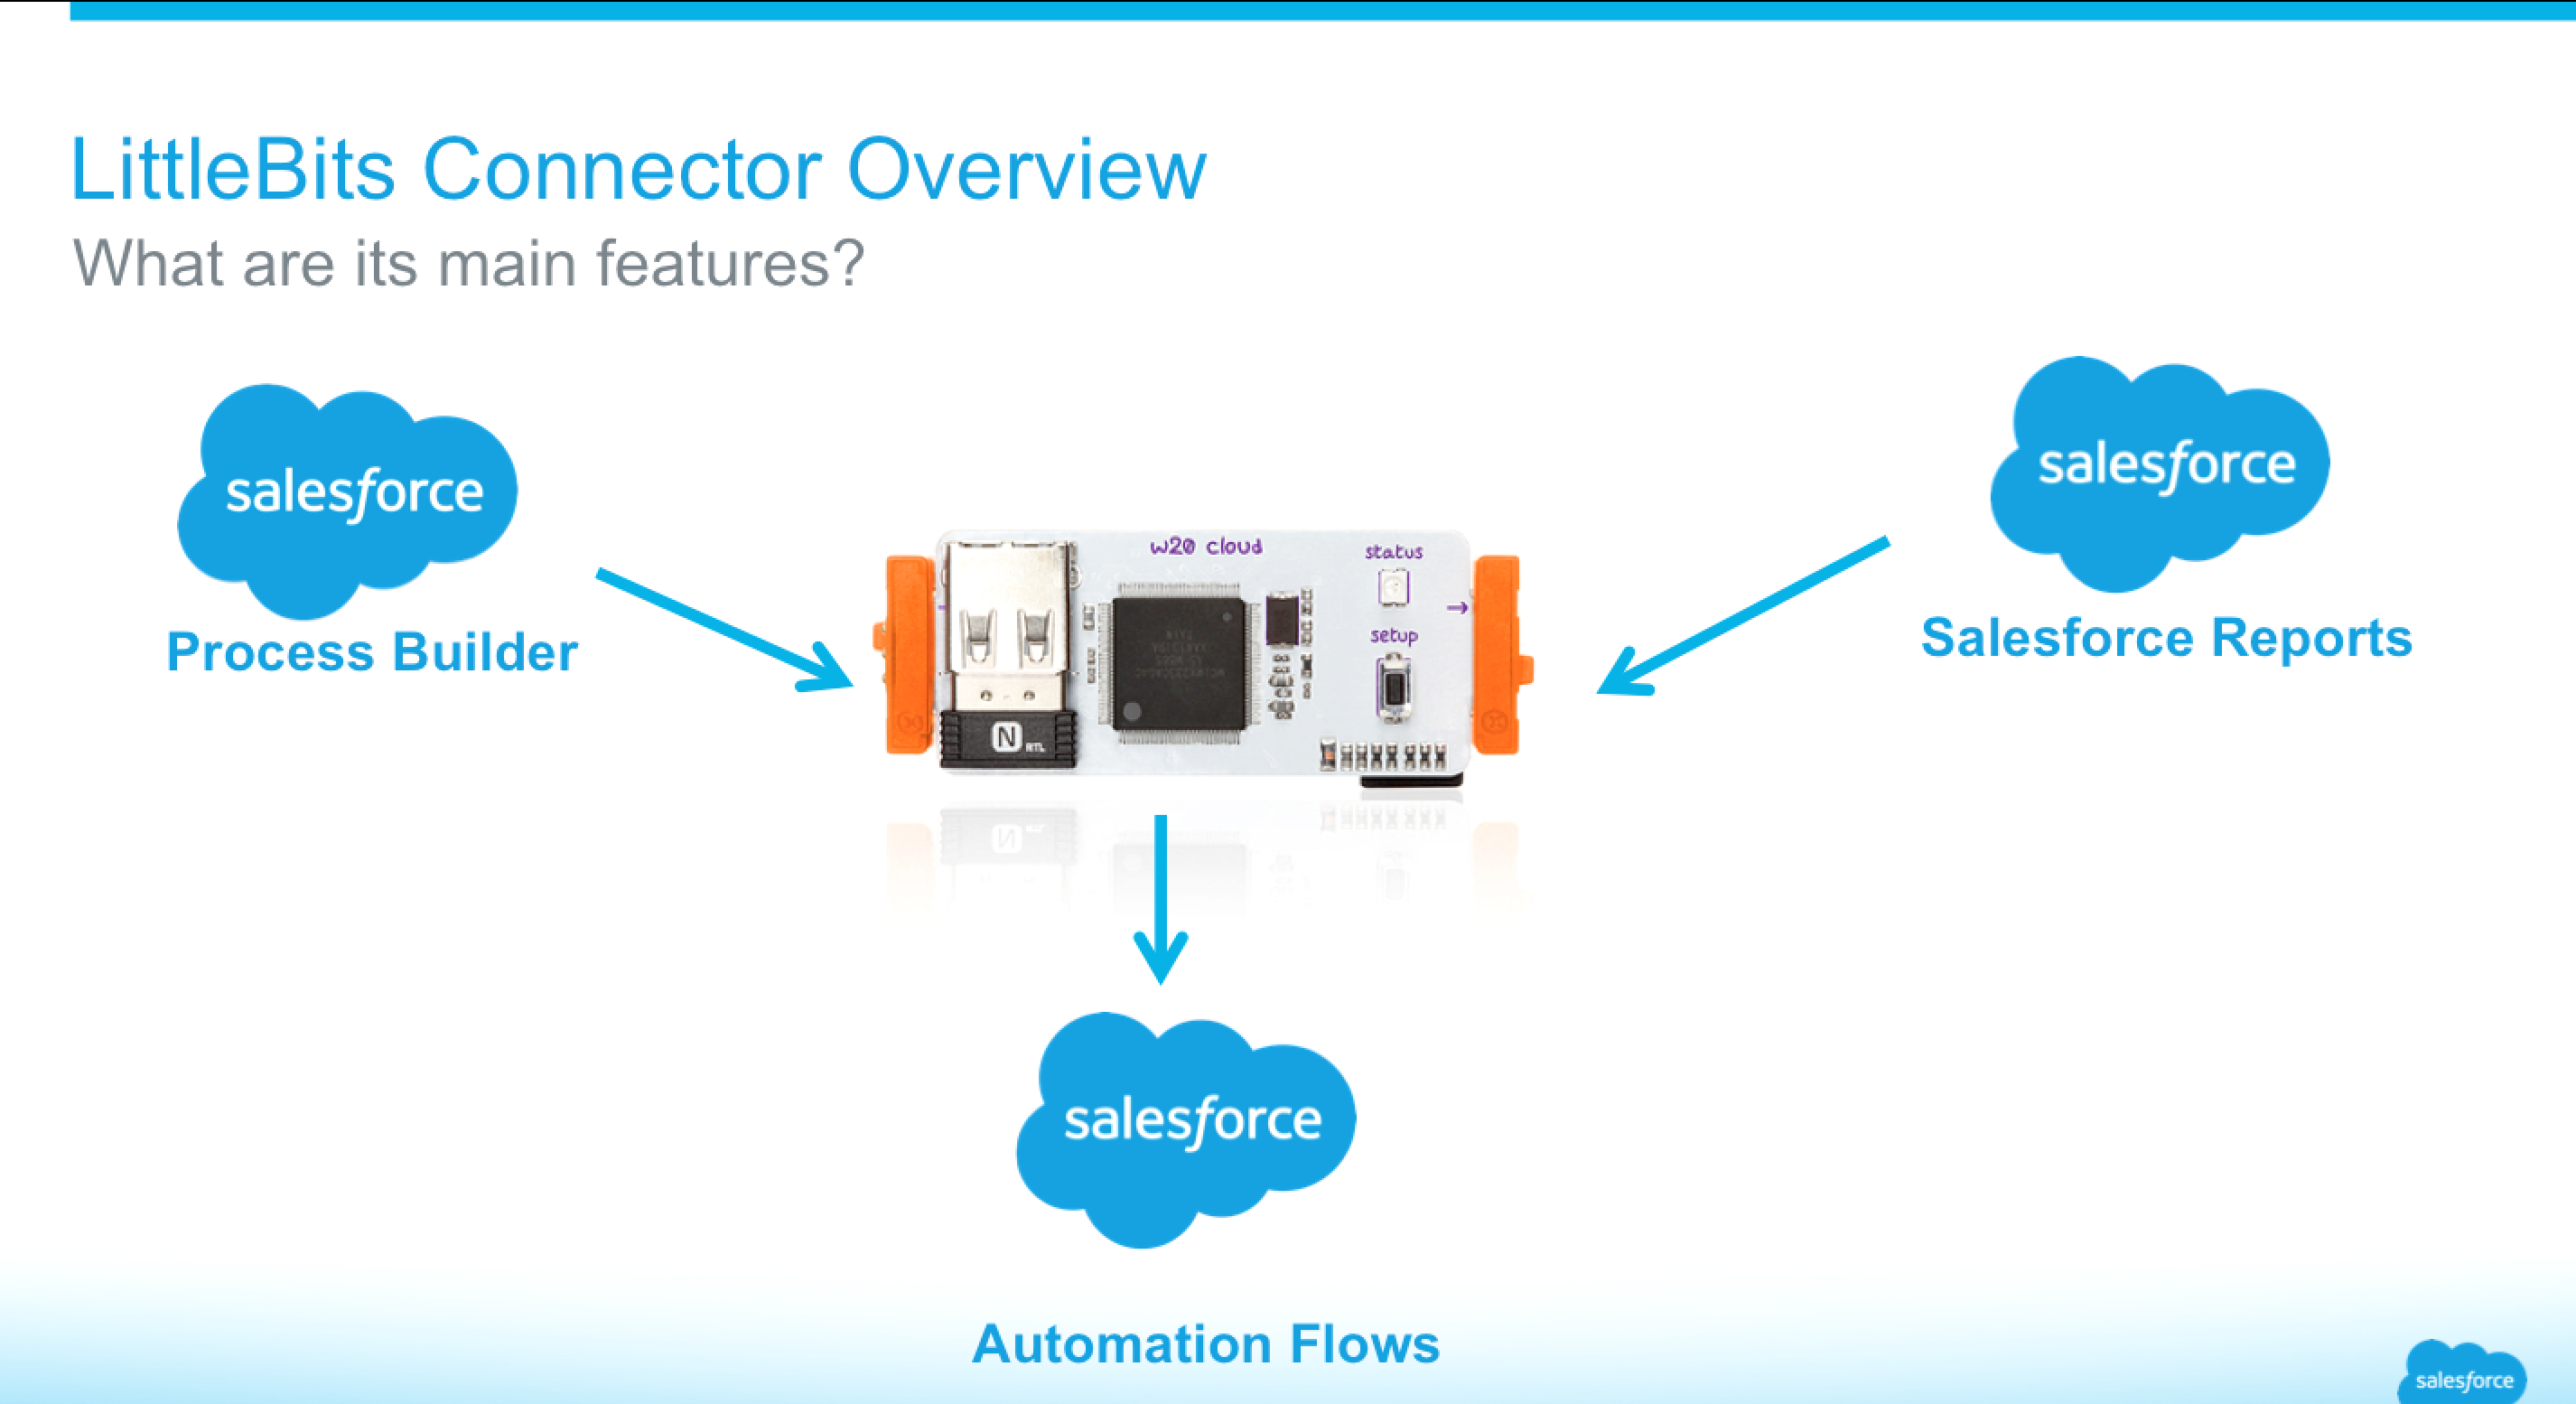 LittleBits Connector Overview